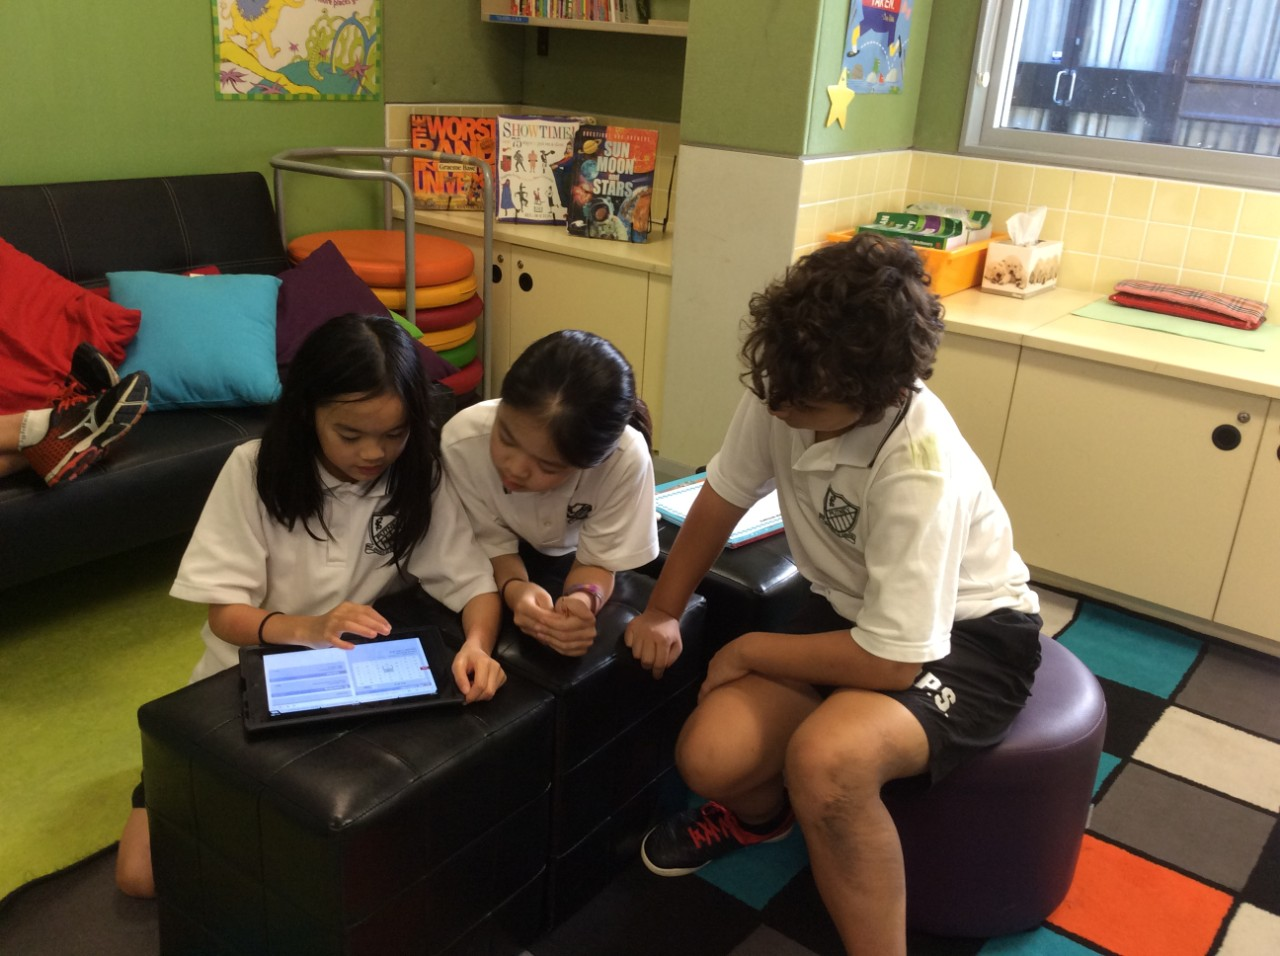 Group of three students working with a tablet to answer some questions.